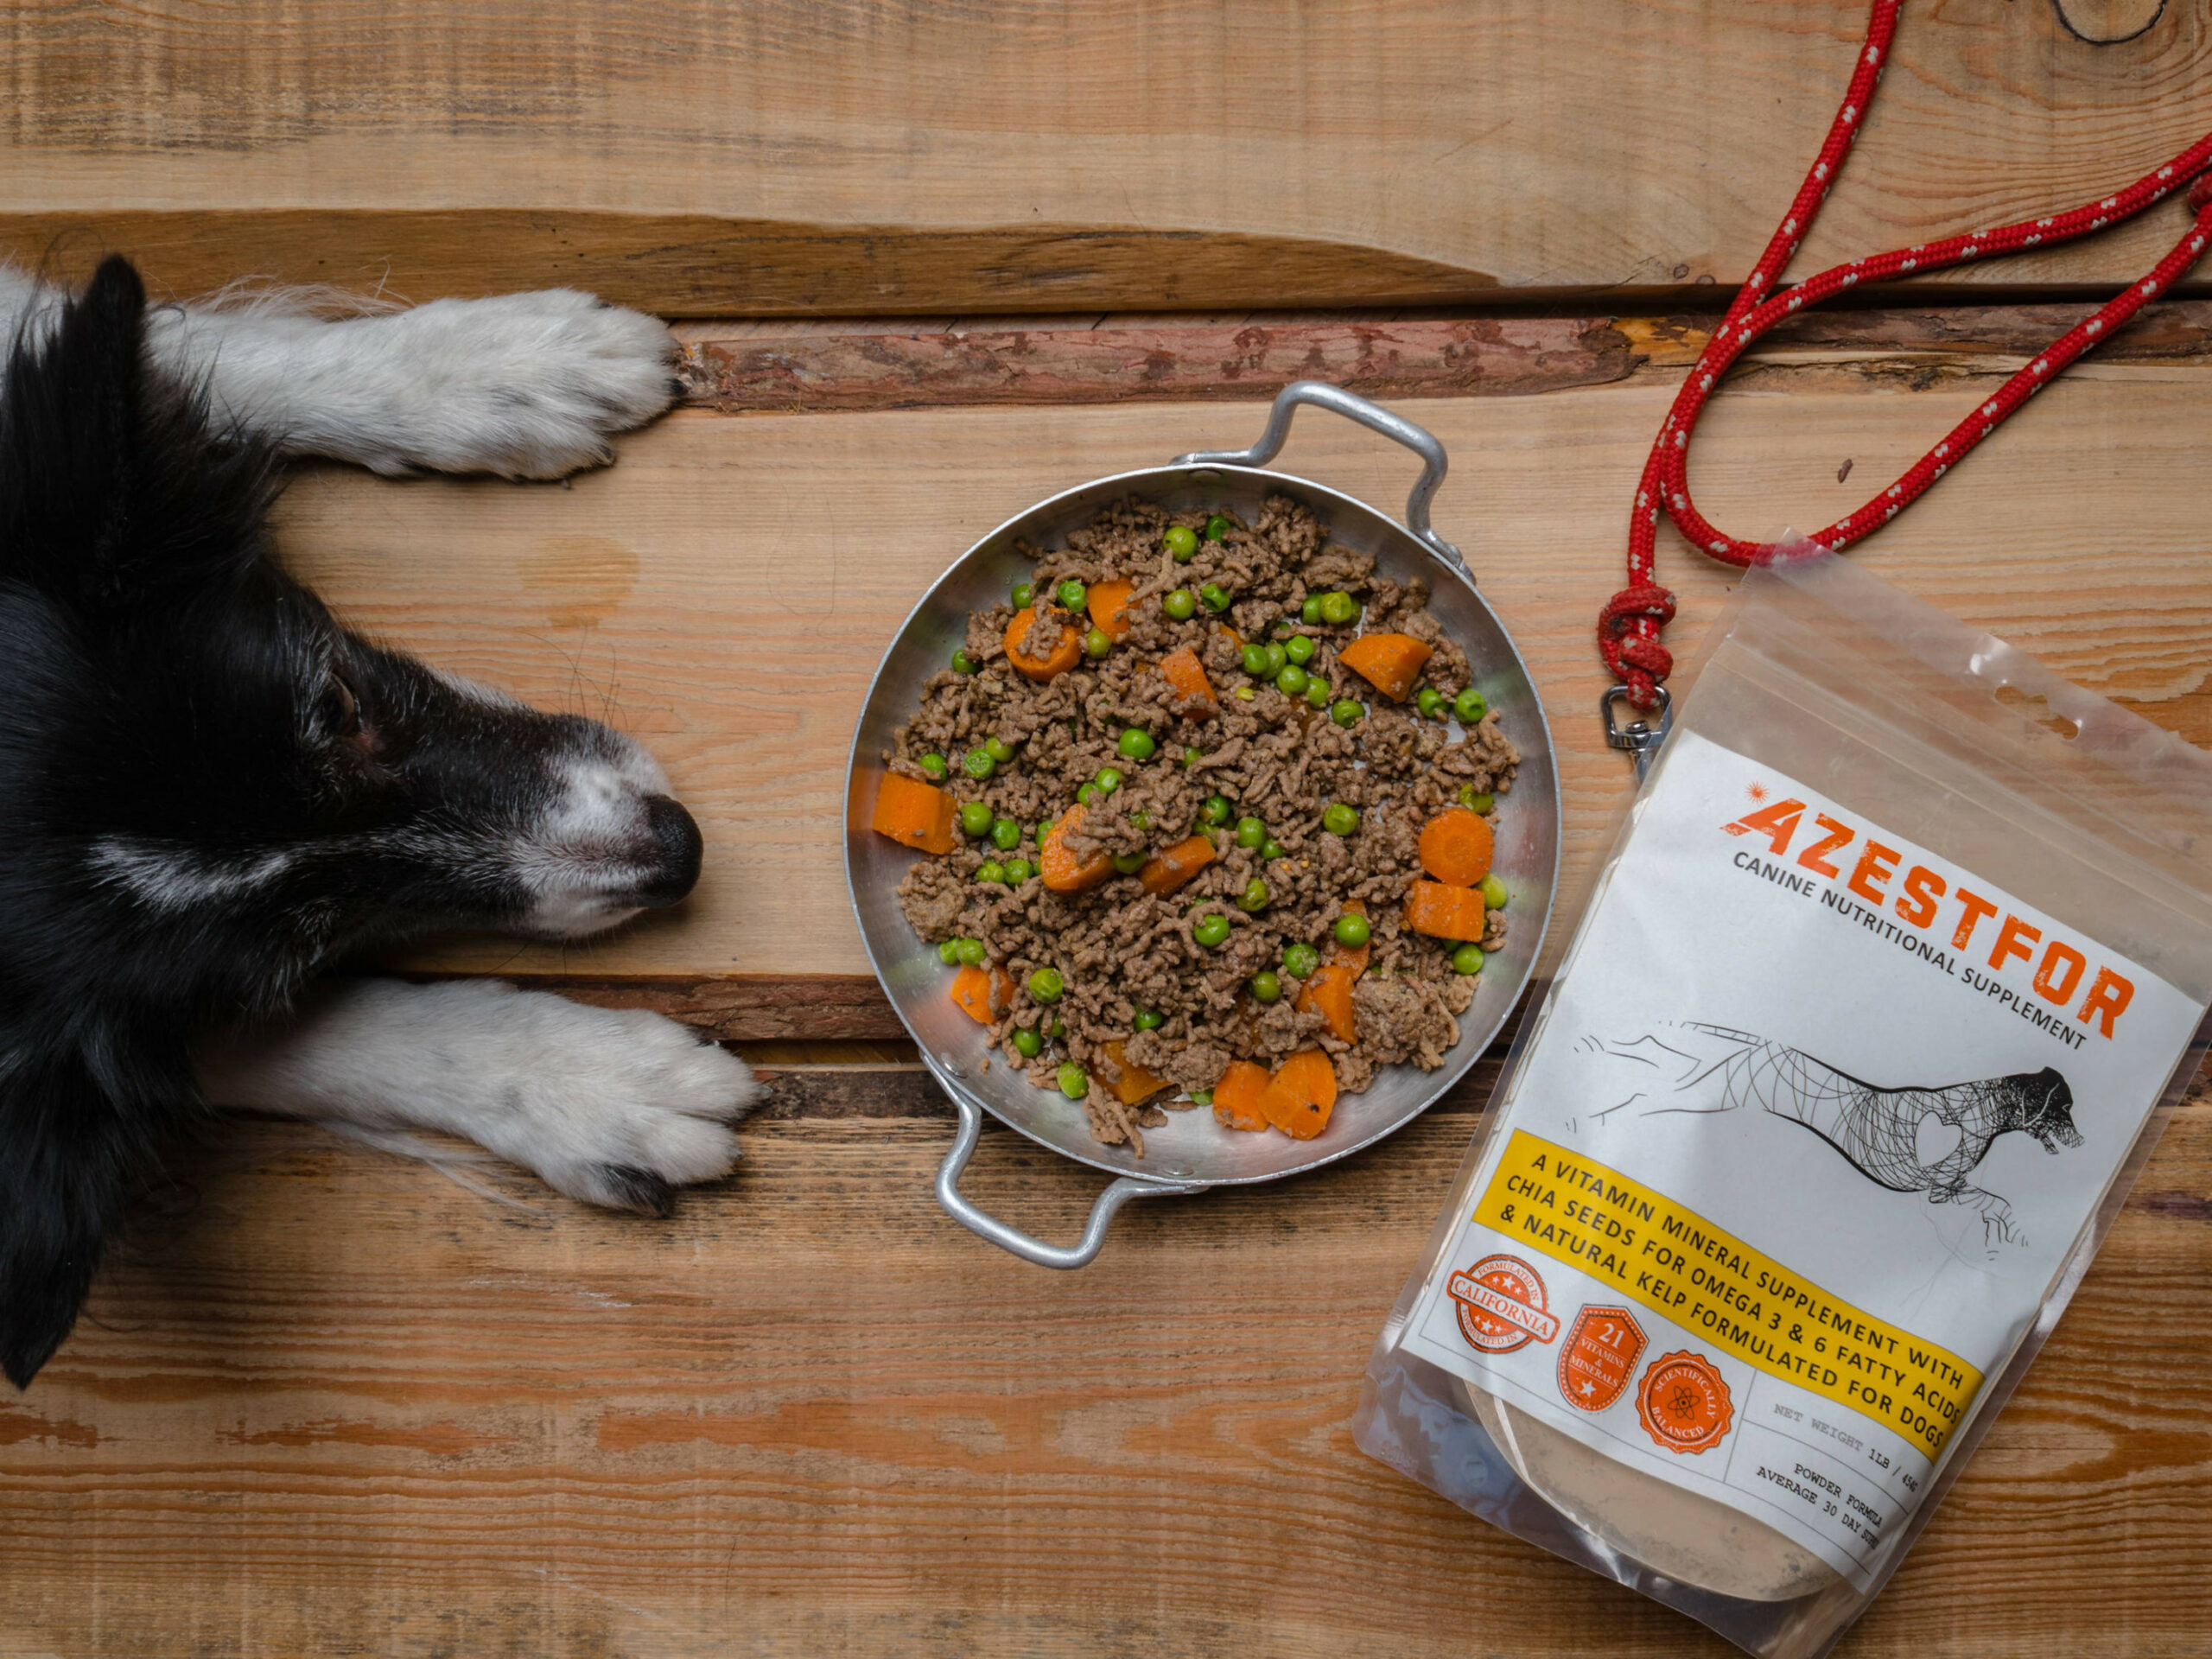 Recipes For Homemade Dog Food | Azestfor - Low Fat Dog Food Recipes